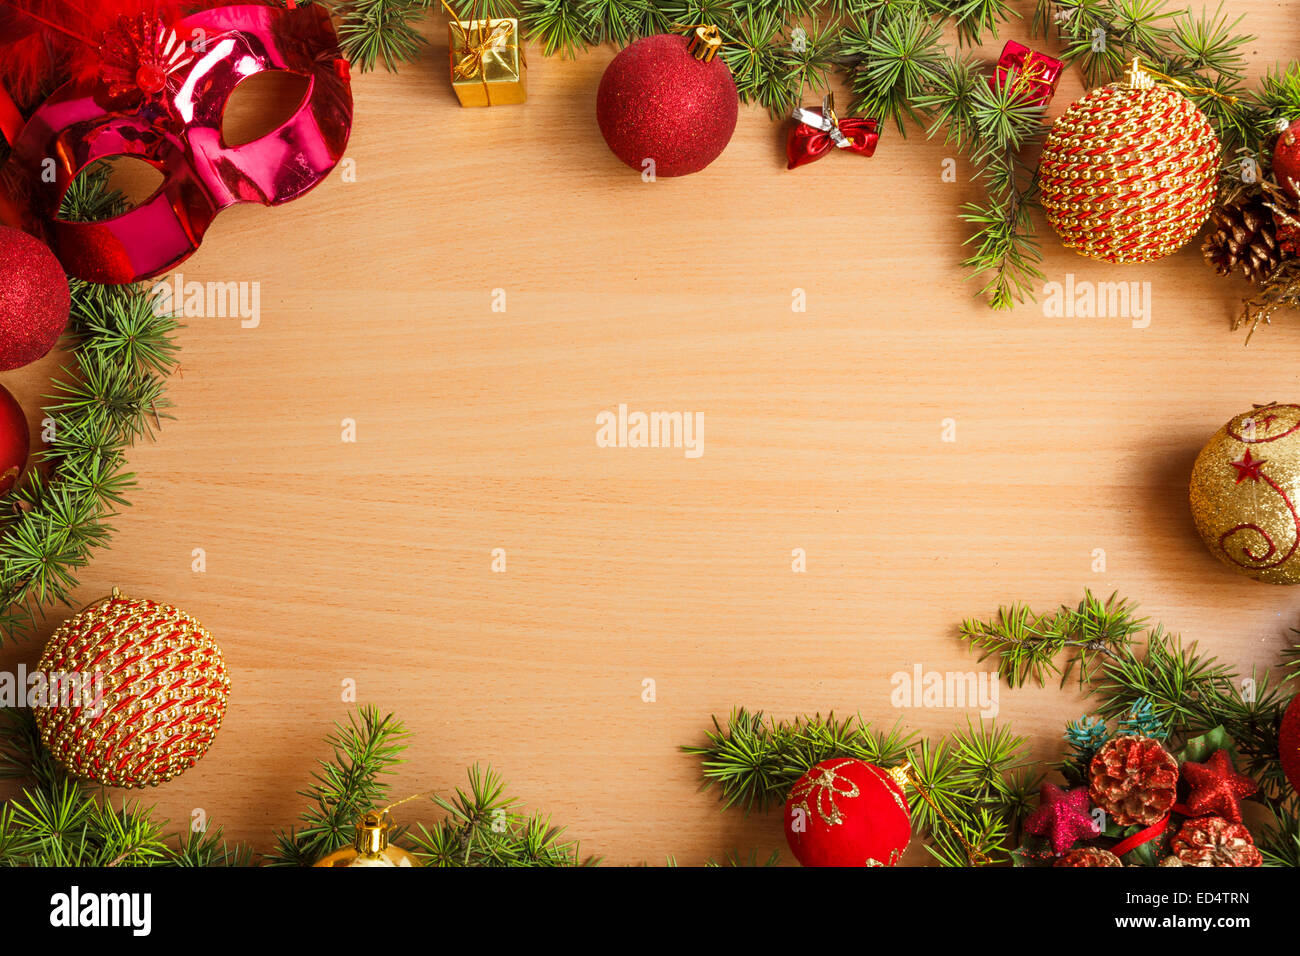 Christmas decoration with fir tree and glamor mask masquerade for party and celebration and ornamentals gifts on - Stock Image